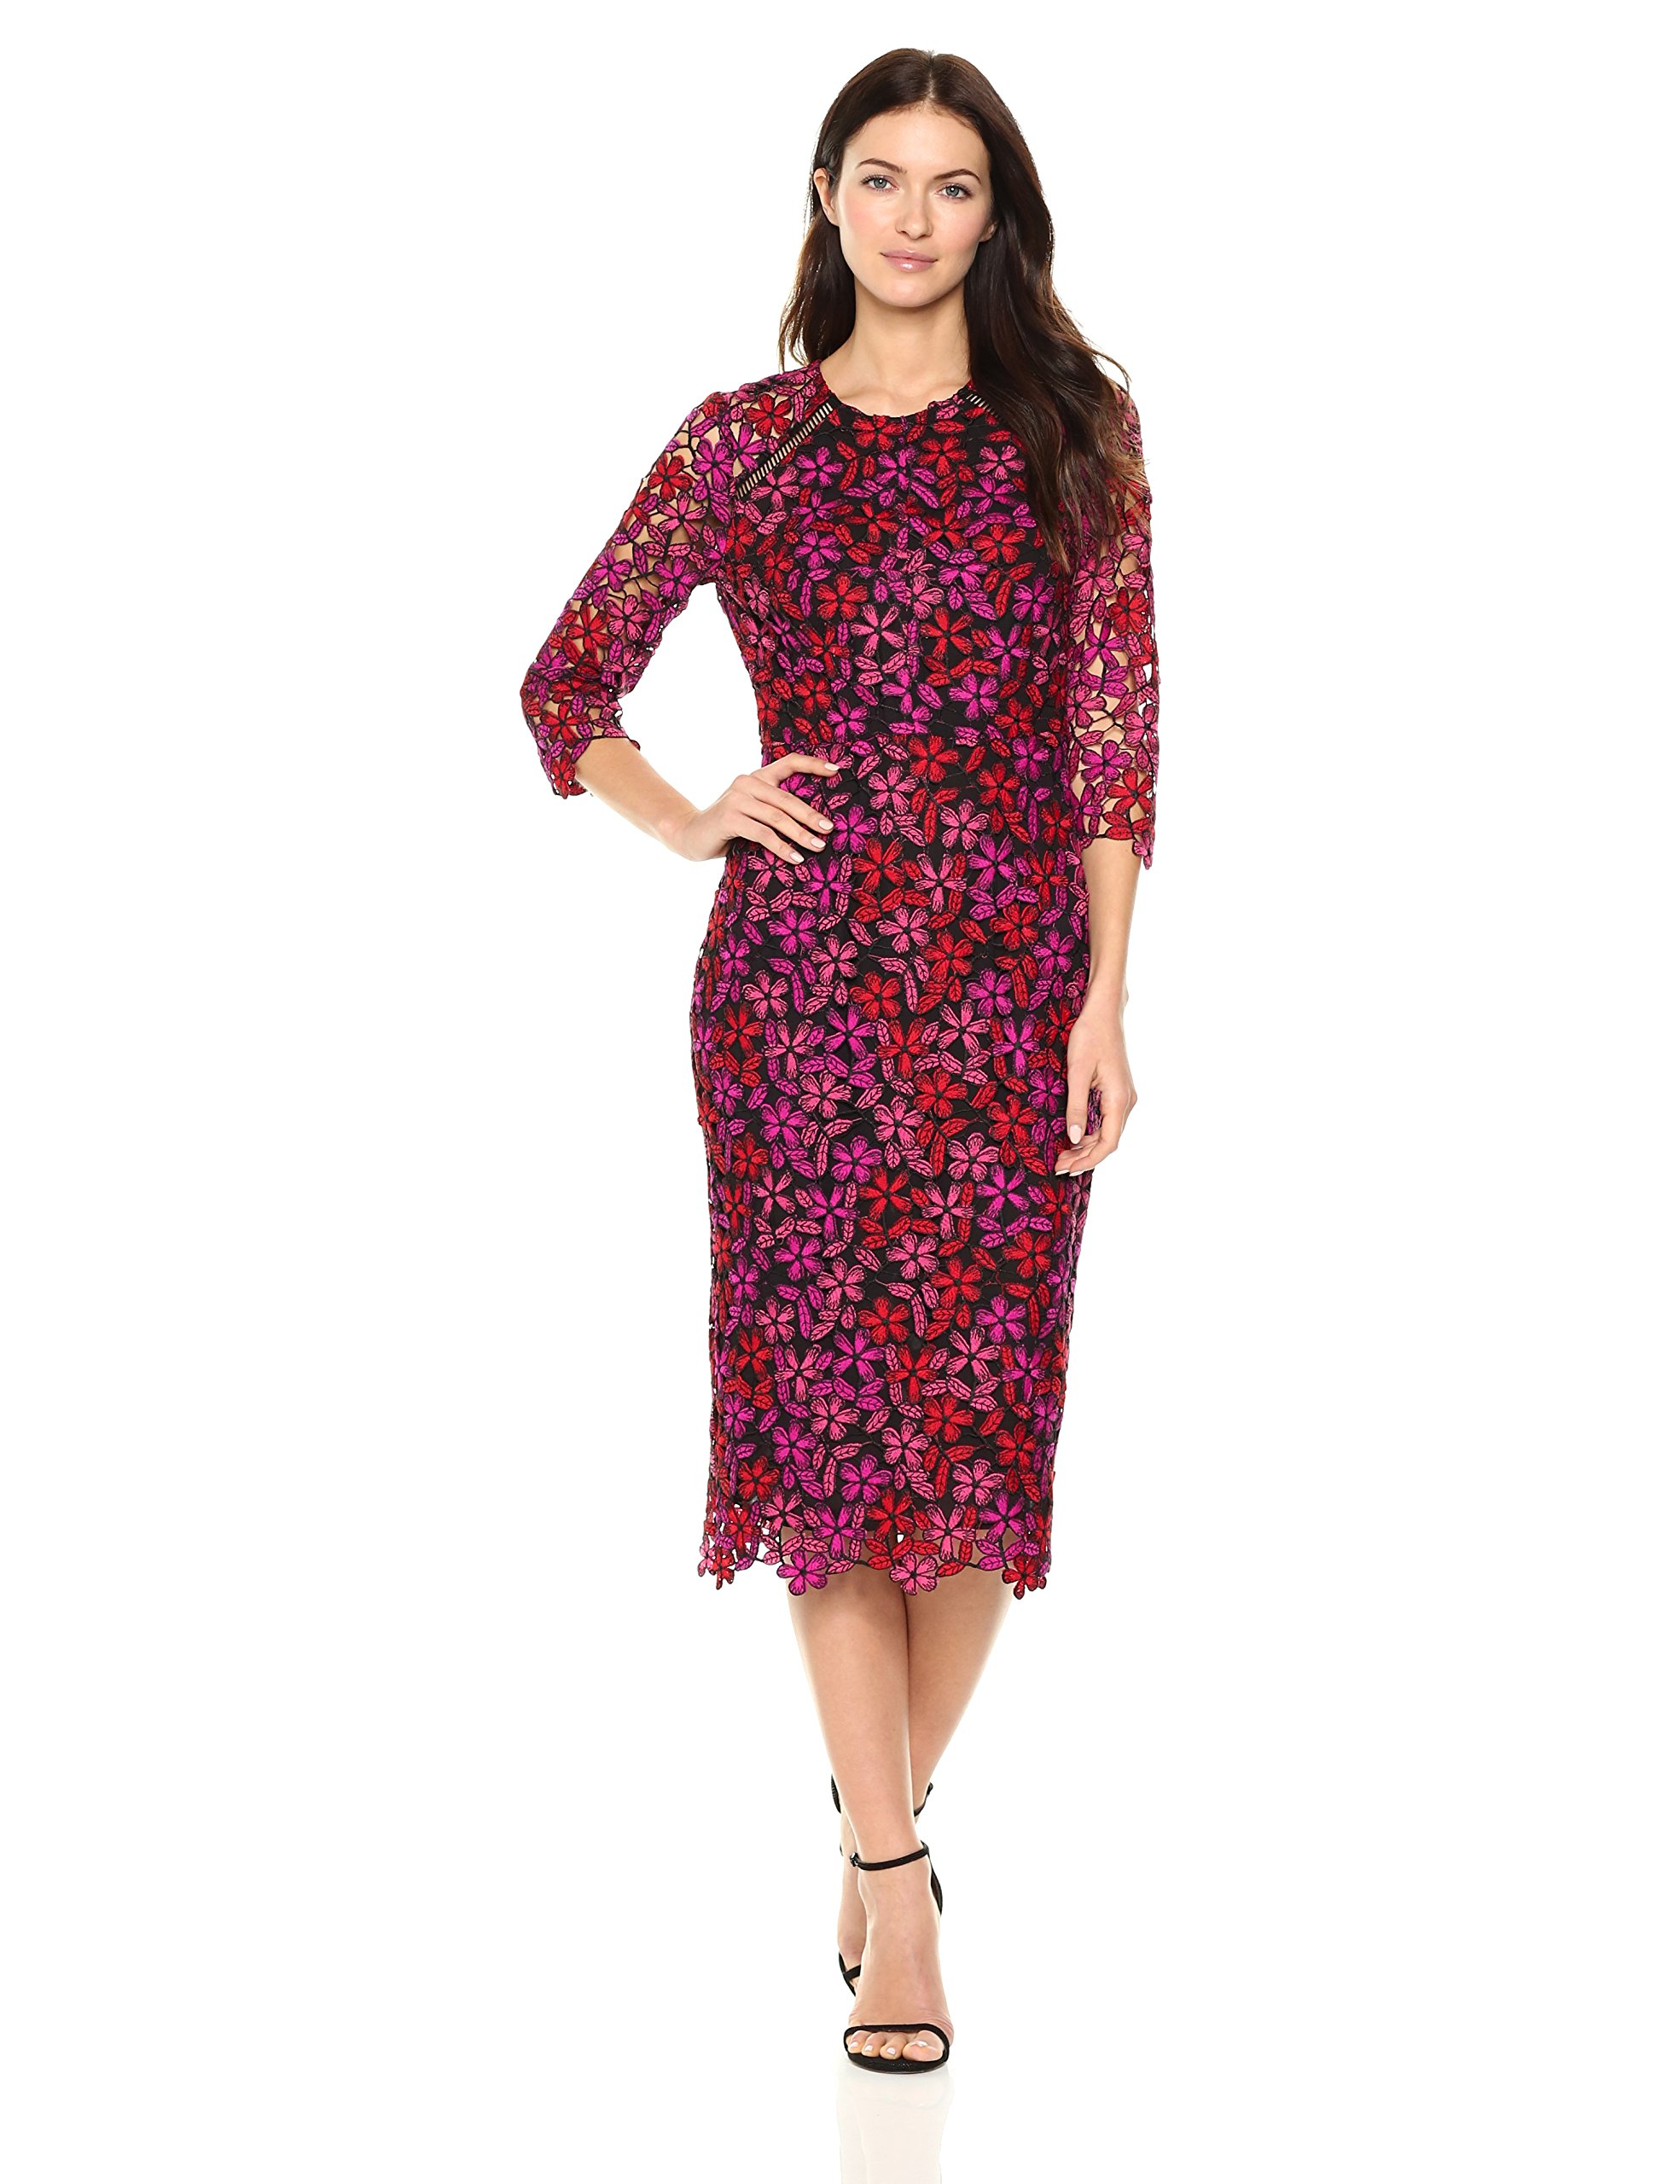 Shoshanna Women's Havan Dress, Fuchsia Multi, 4